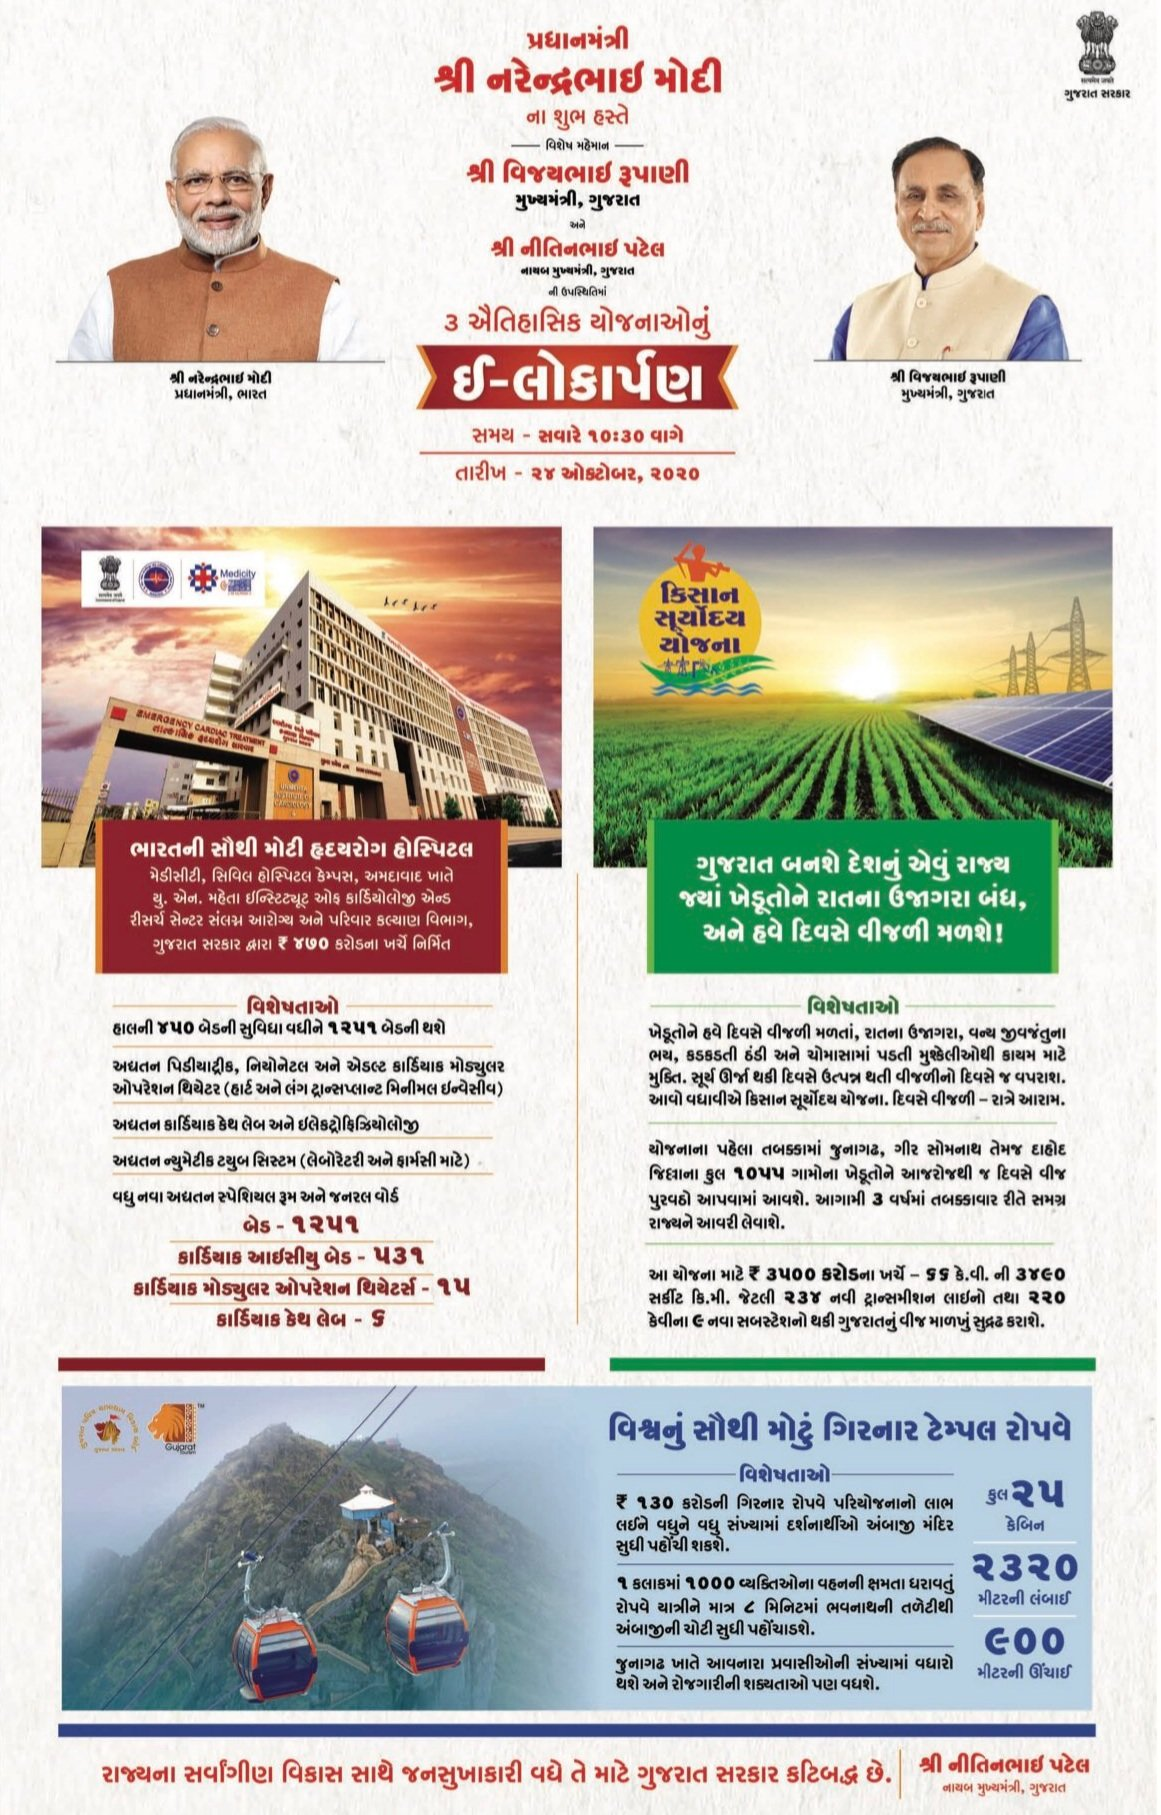 PM Modi Launches Three Mega Projects in Gujarat Including Kisan Suryodaya Yojana for Farmers